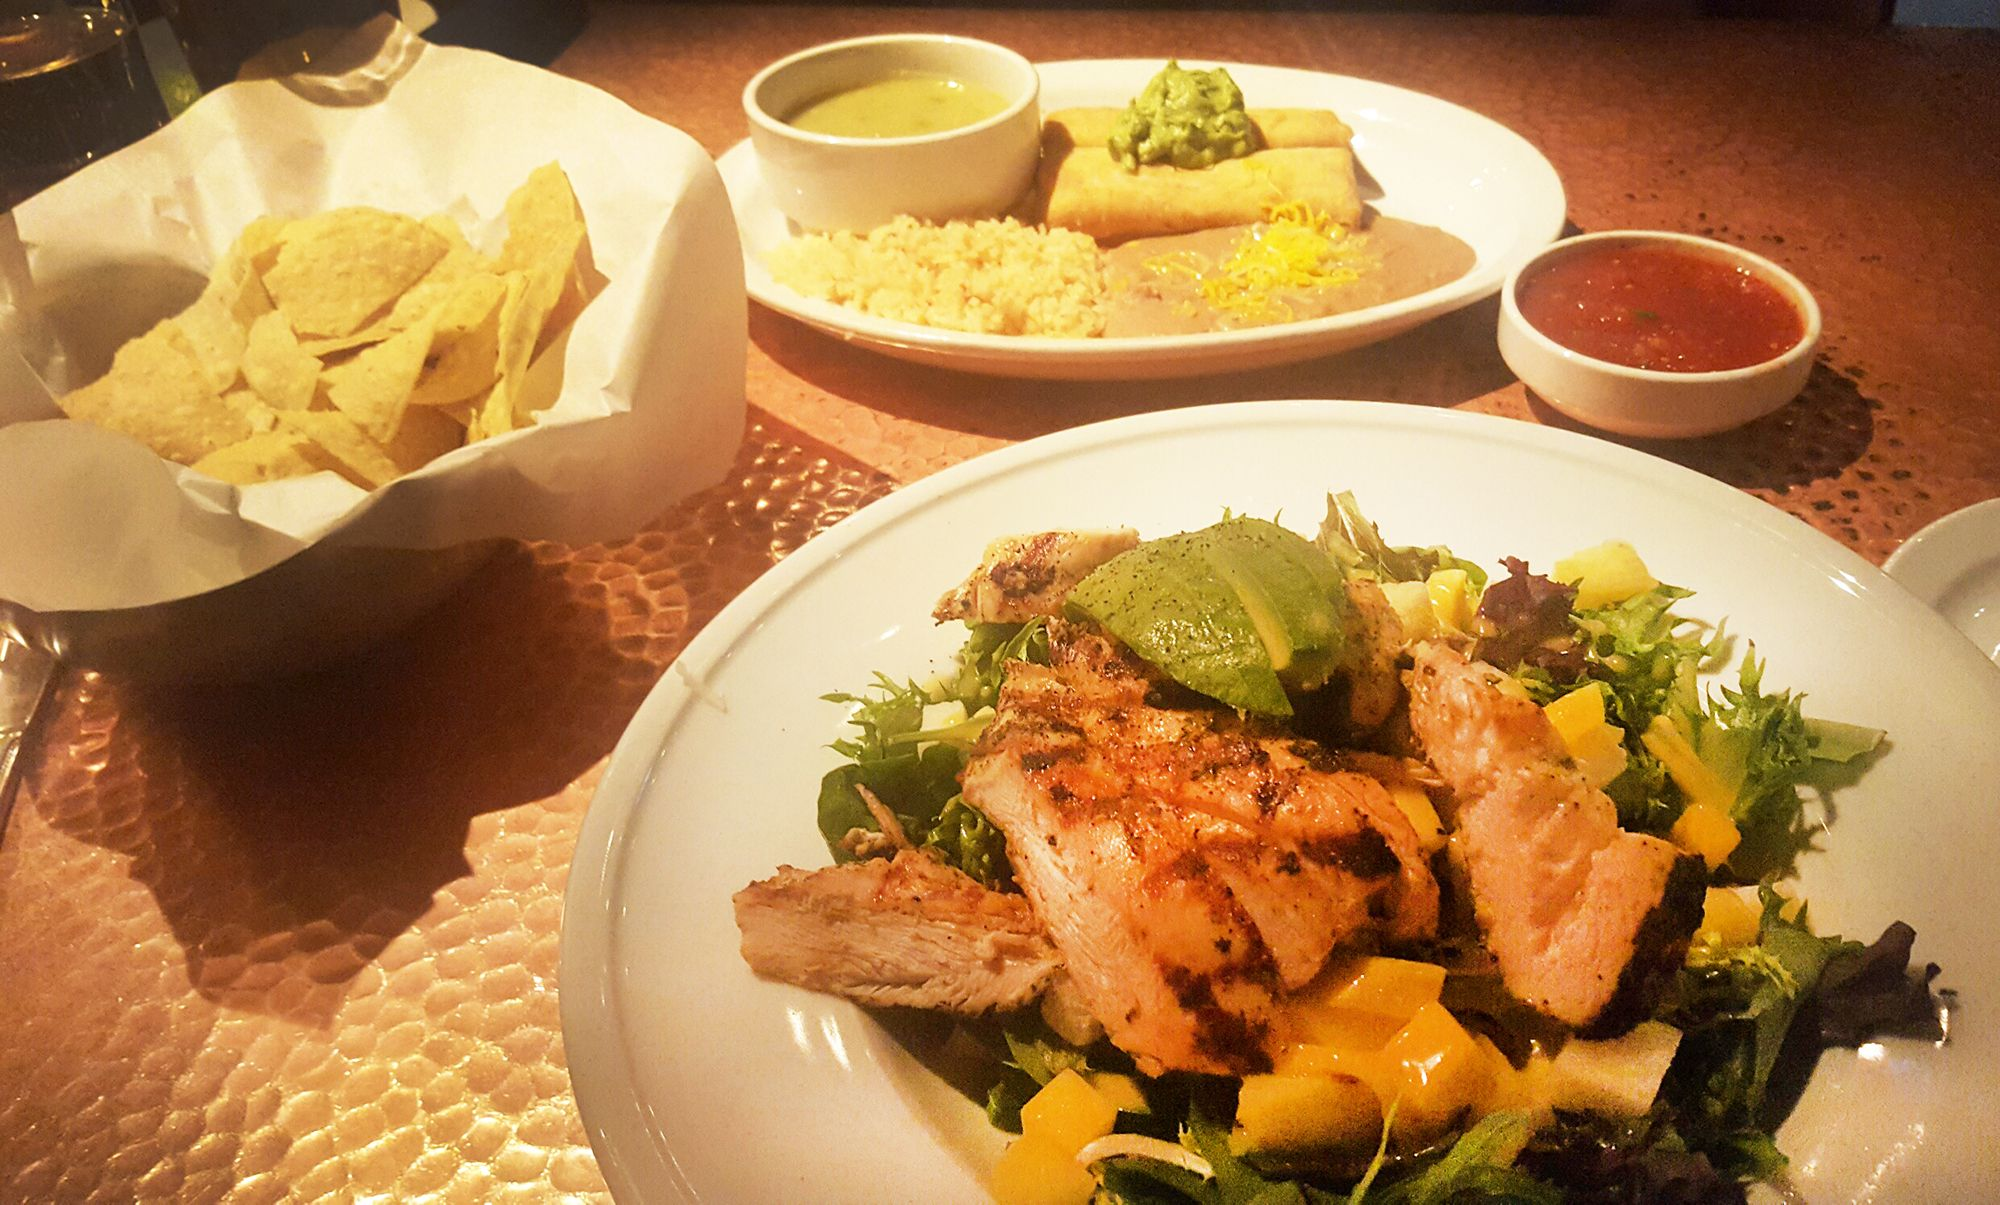 Exceptional Mexican food served in style at La Loma in